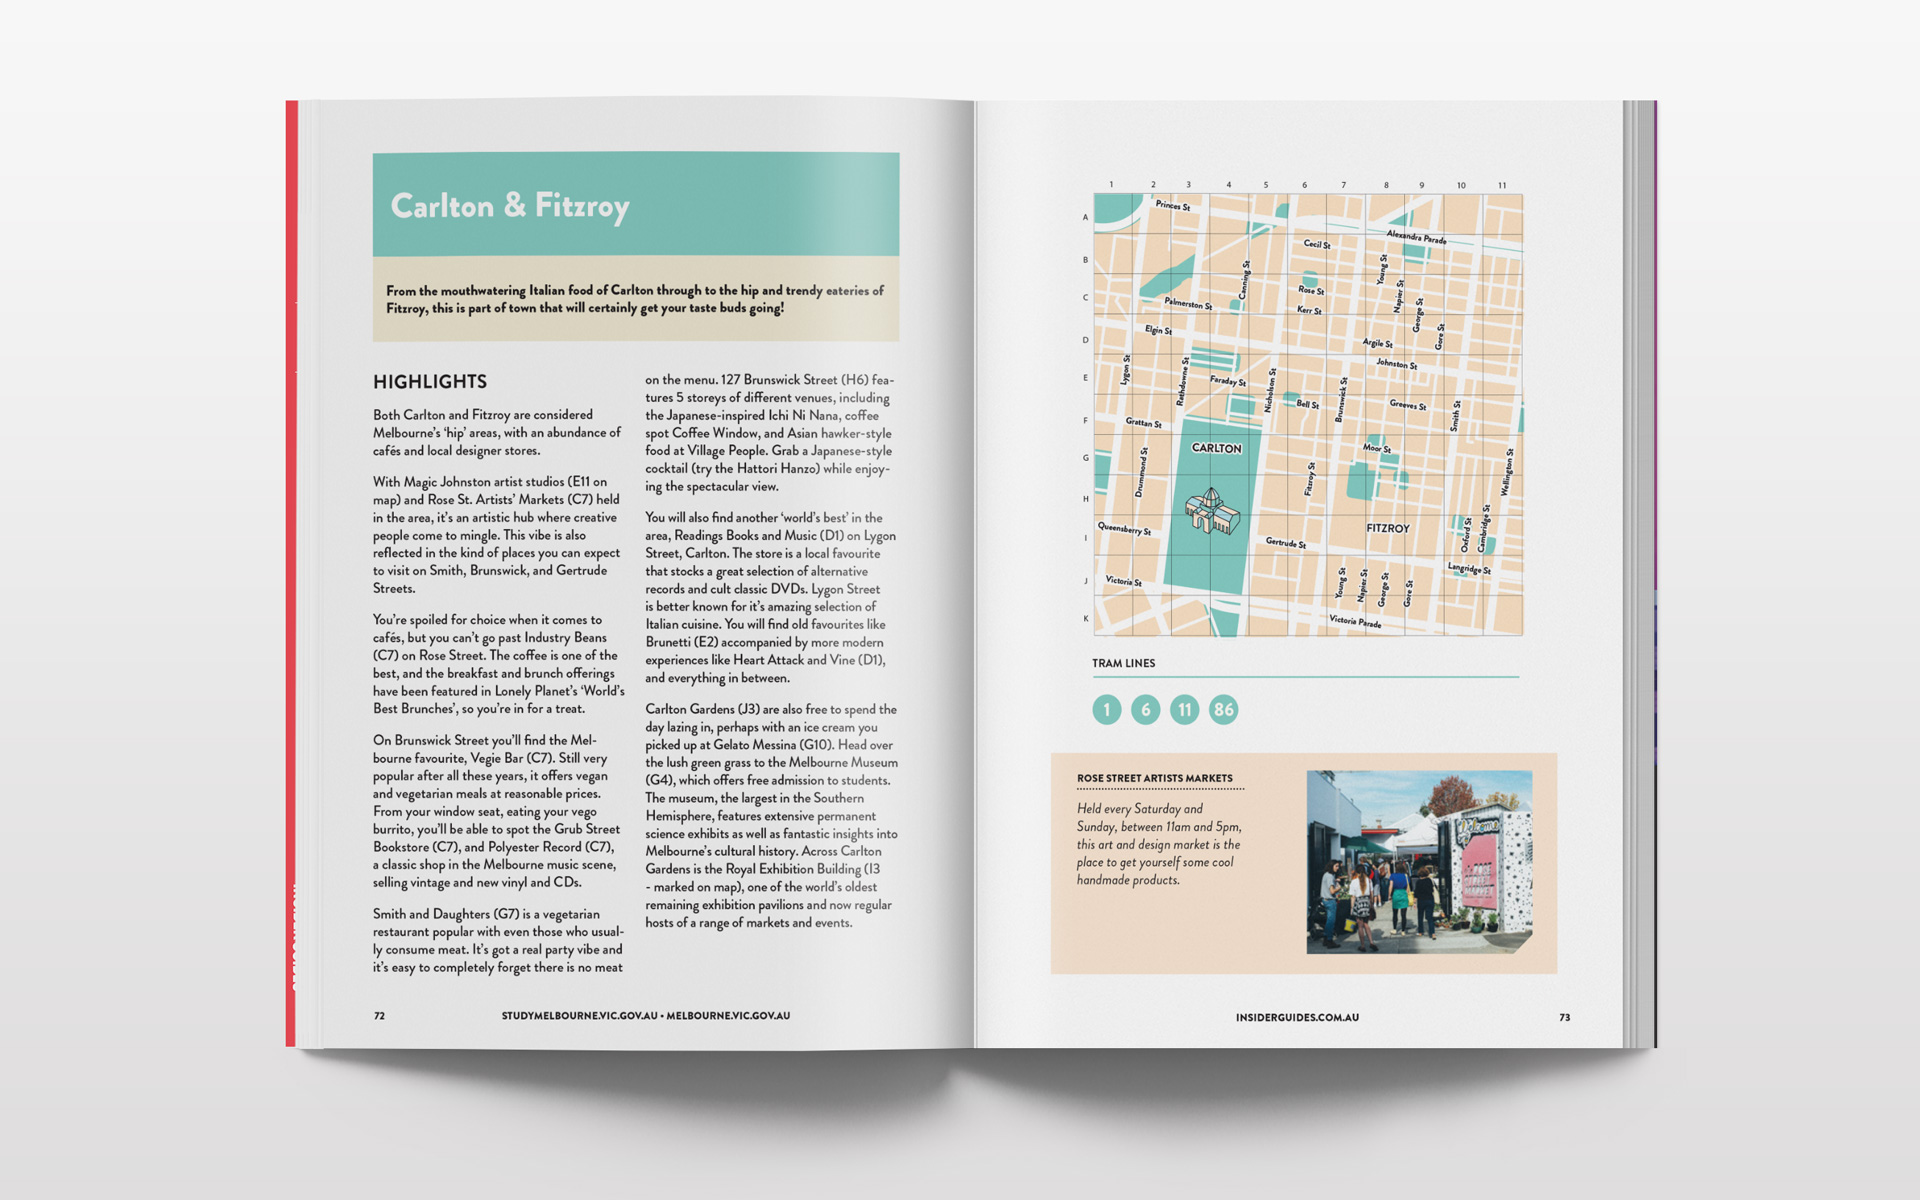 Carlton and Fitzroy in Melbourne illustrated city map